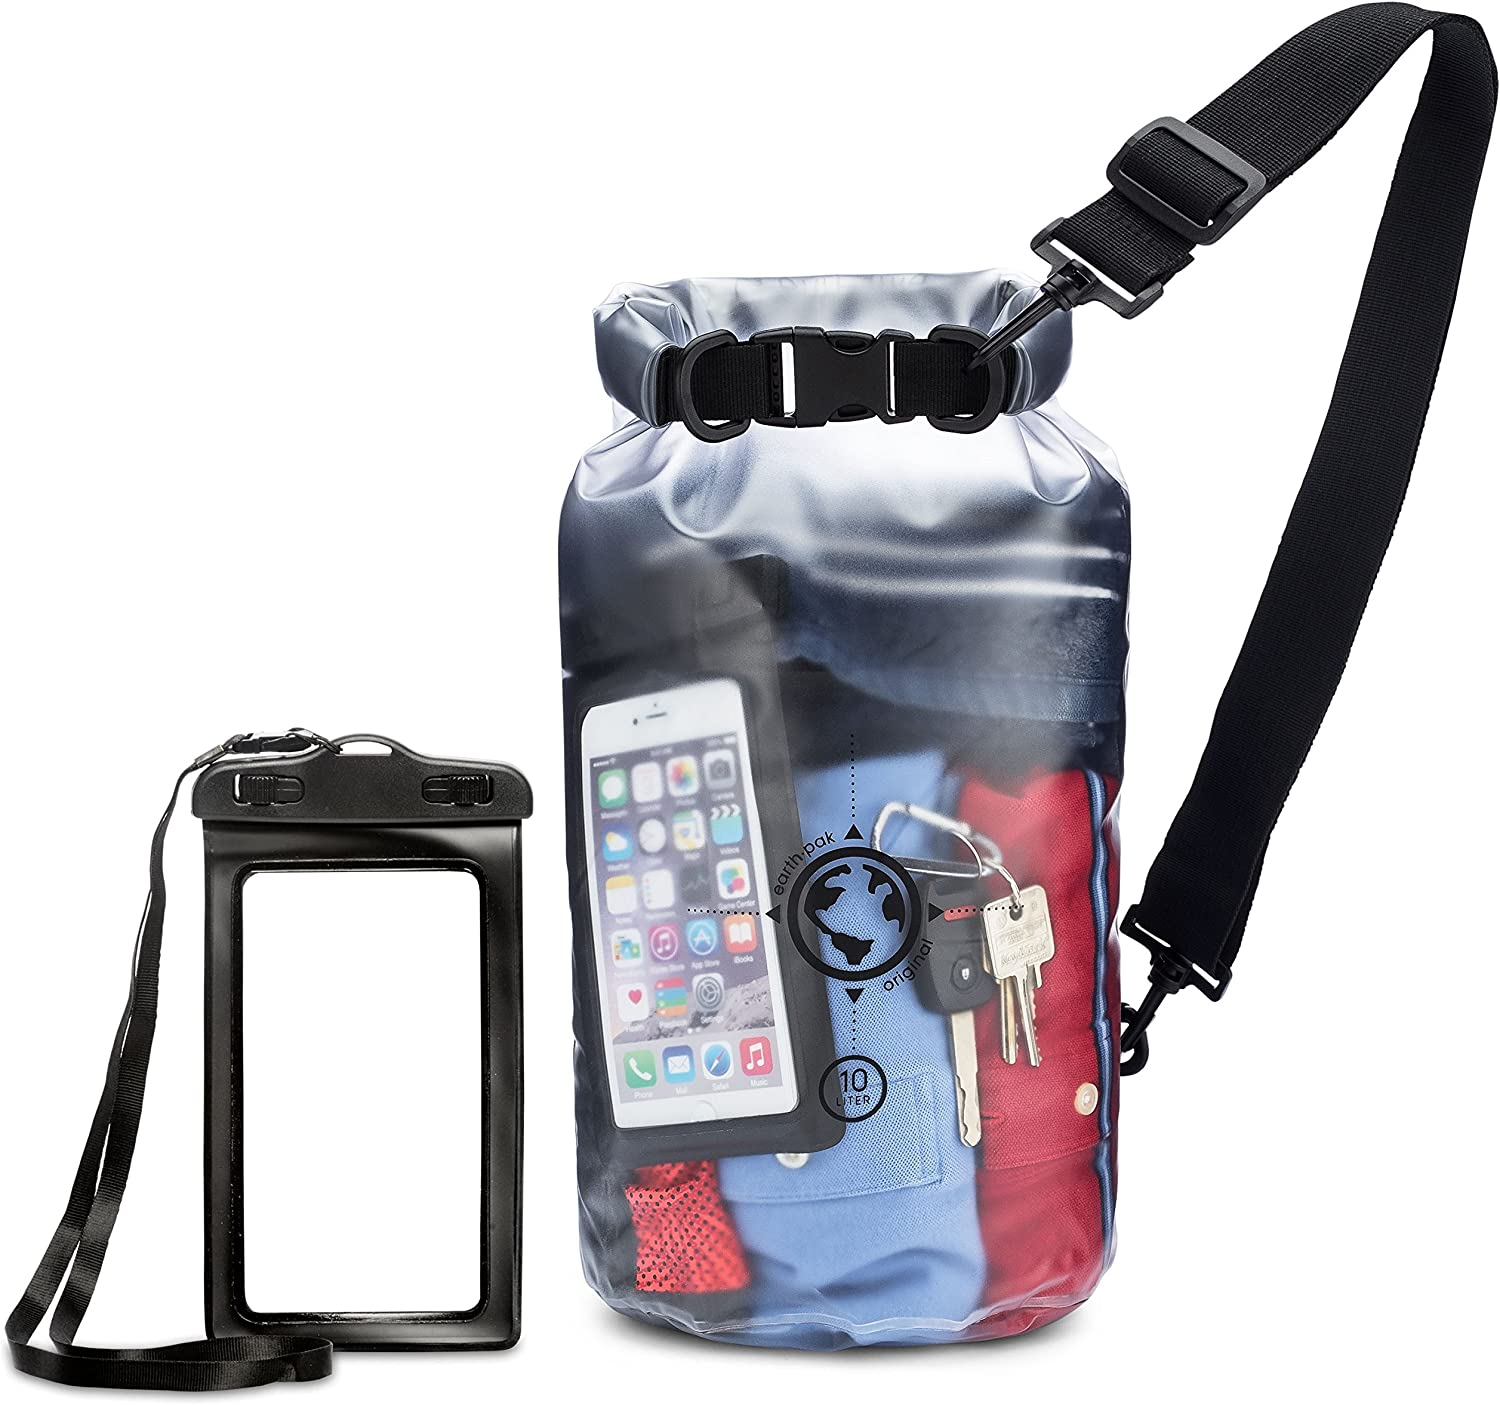 Earth Pak Waterproof Bag- 10L / 20L Sizes - Transparent Dry Bag So You Can See Your Gear - Keep Your Stuff Safe and Secure While at The Beach, Swimming, Fishing, Boating, Kayaking